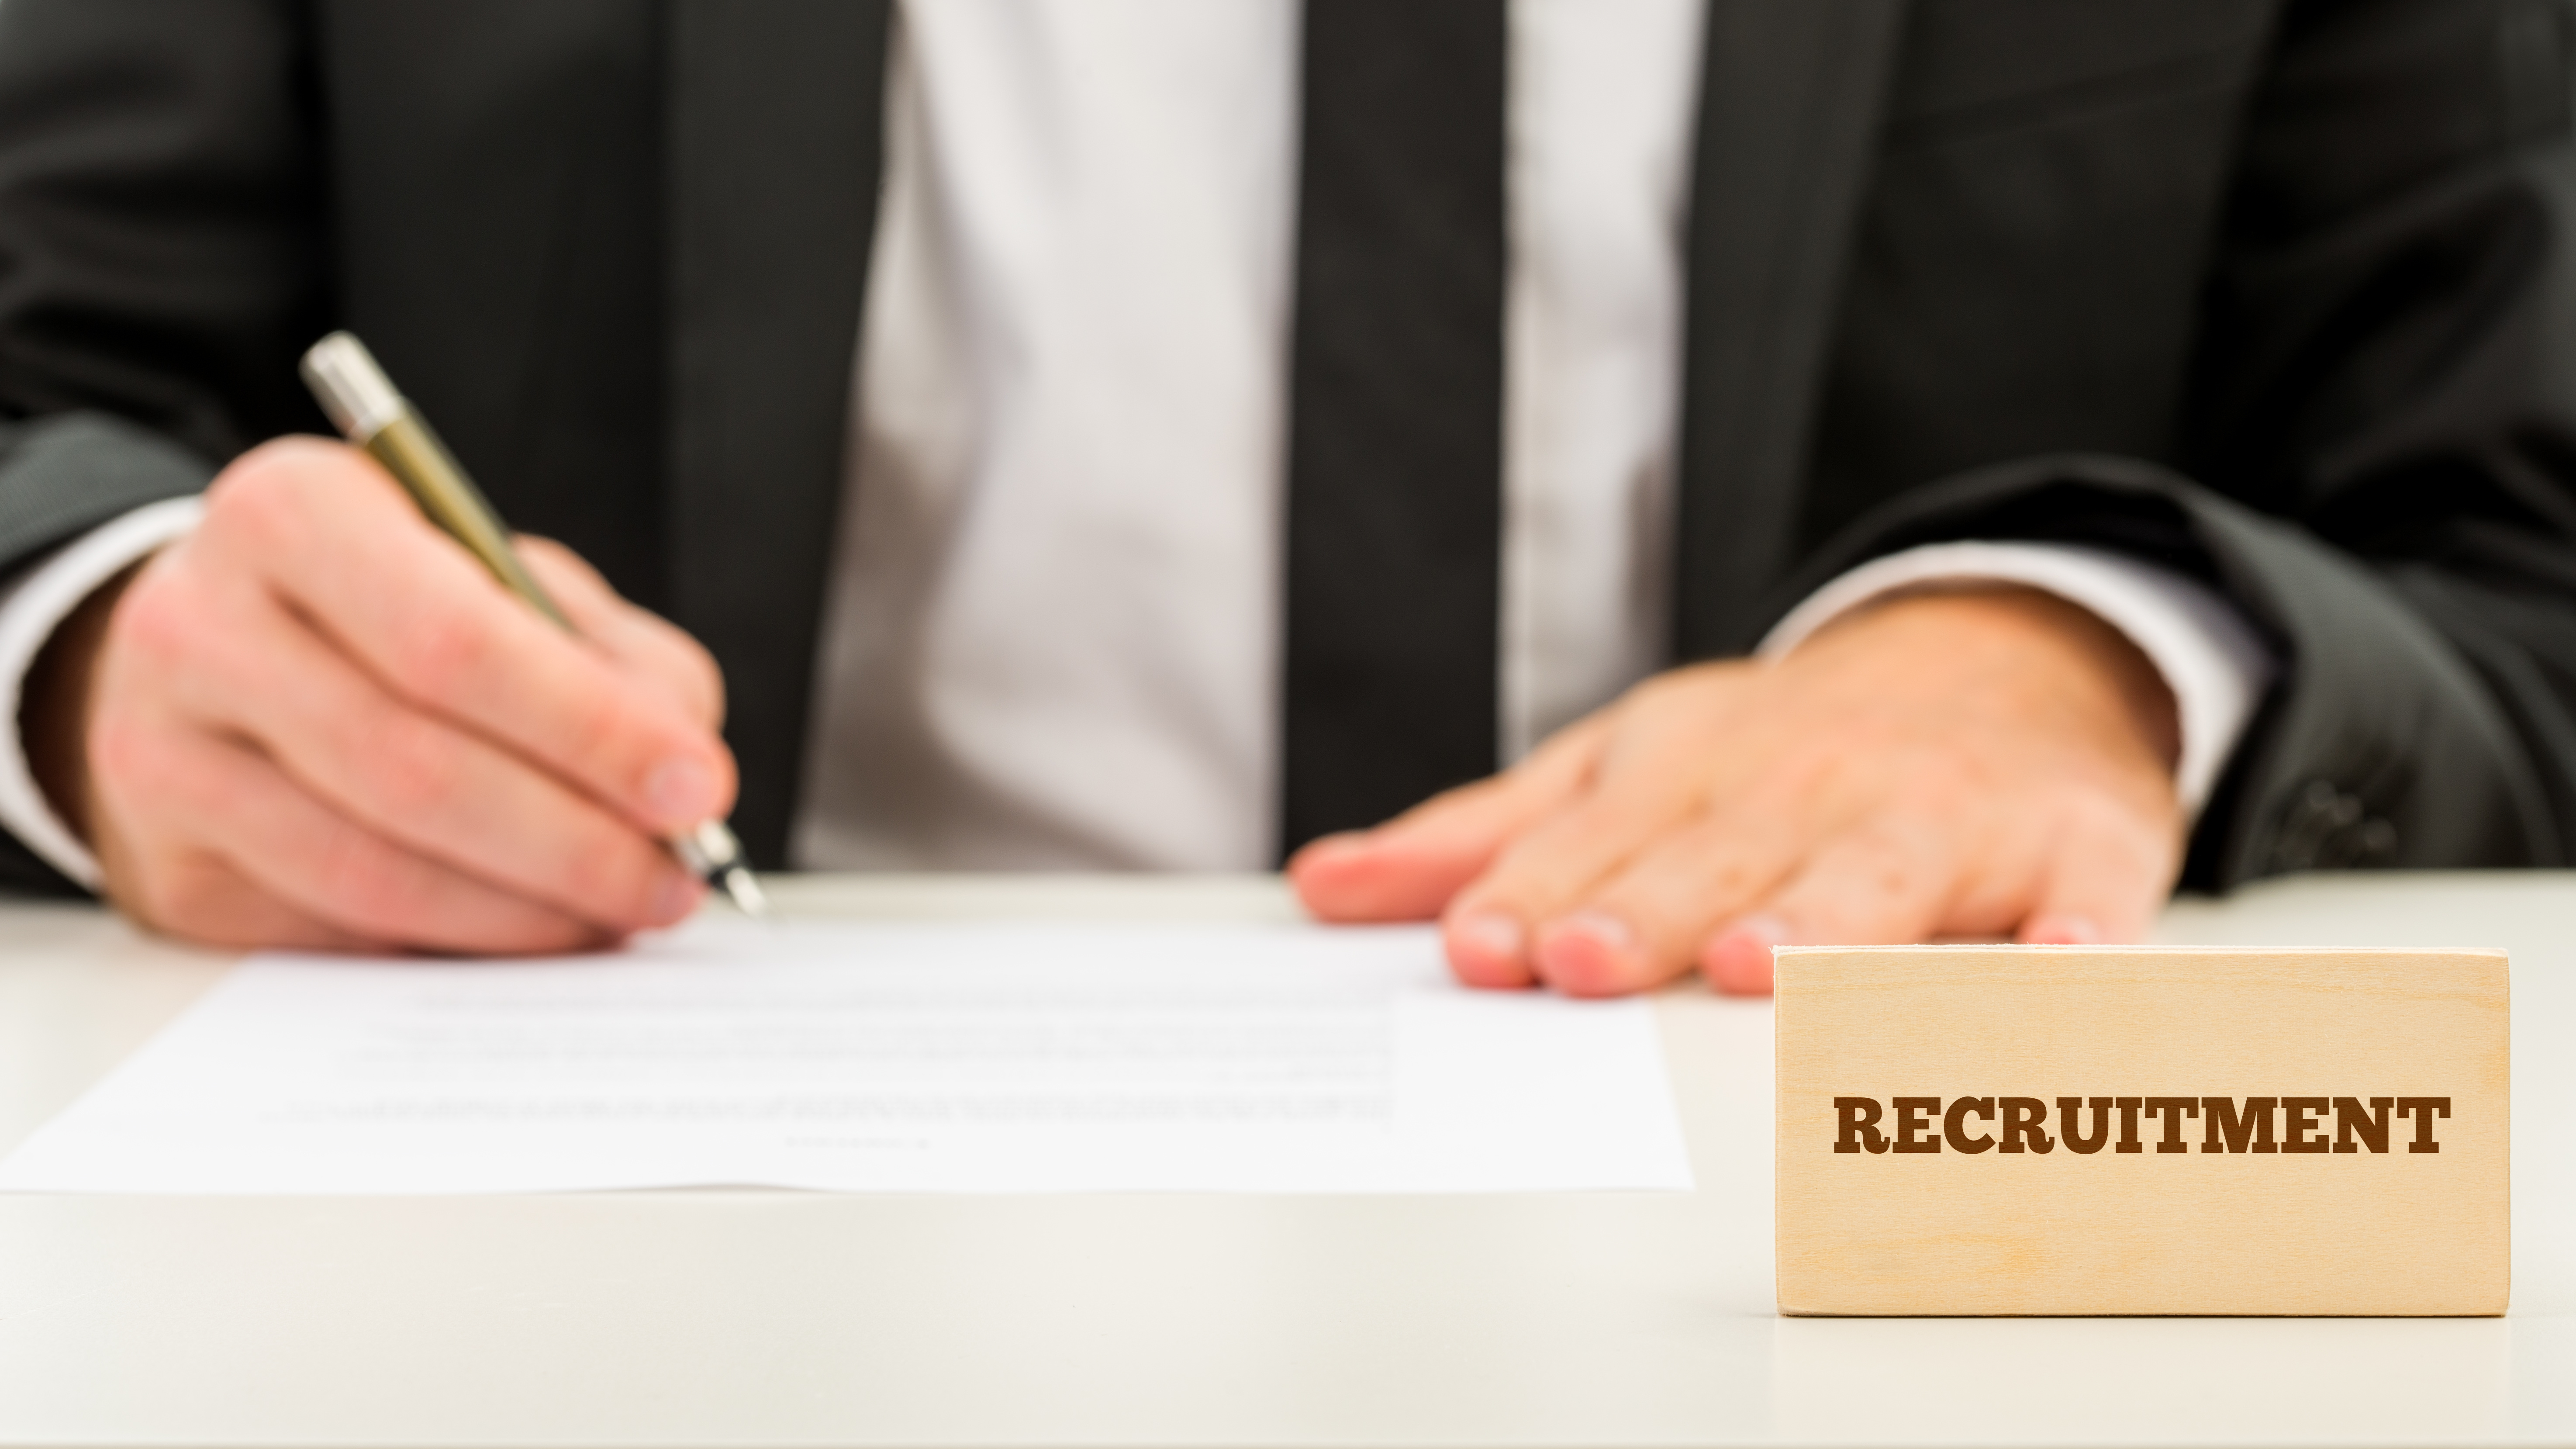 Crucial Tips for Meeting Your Recruiter